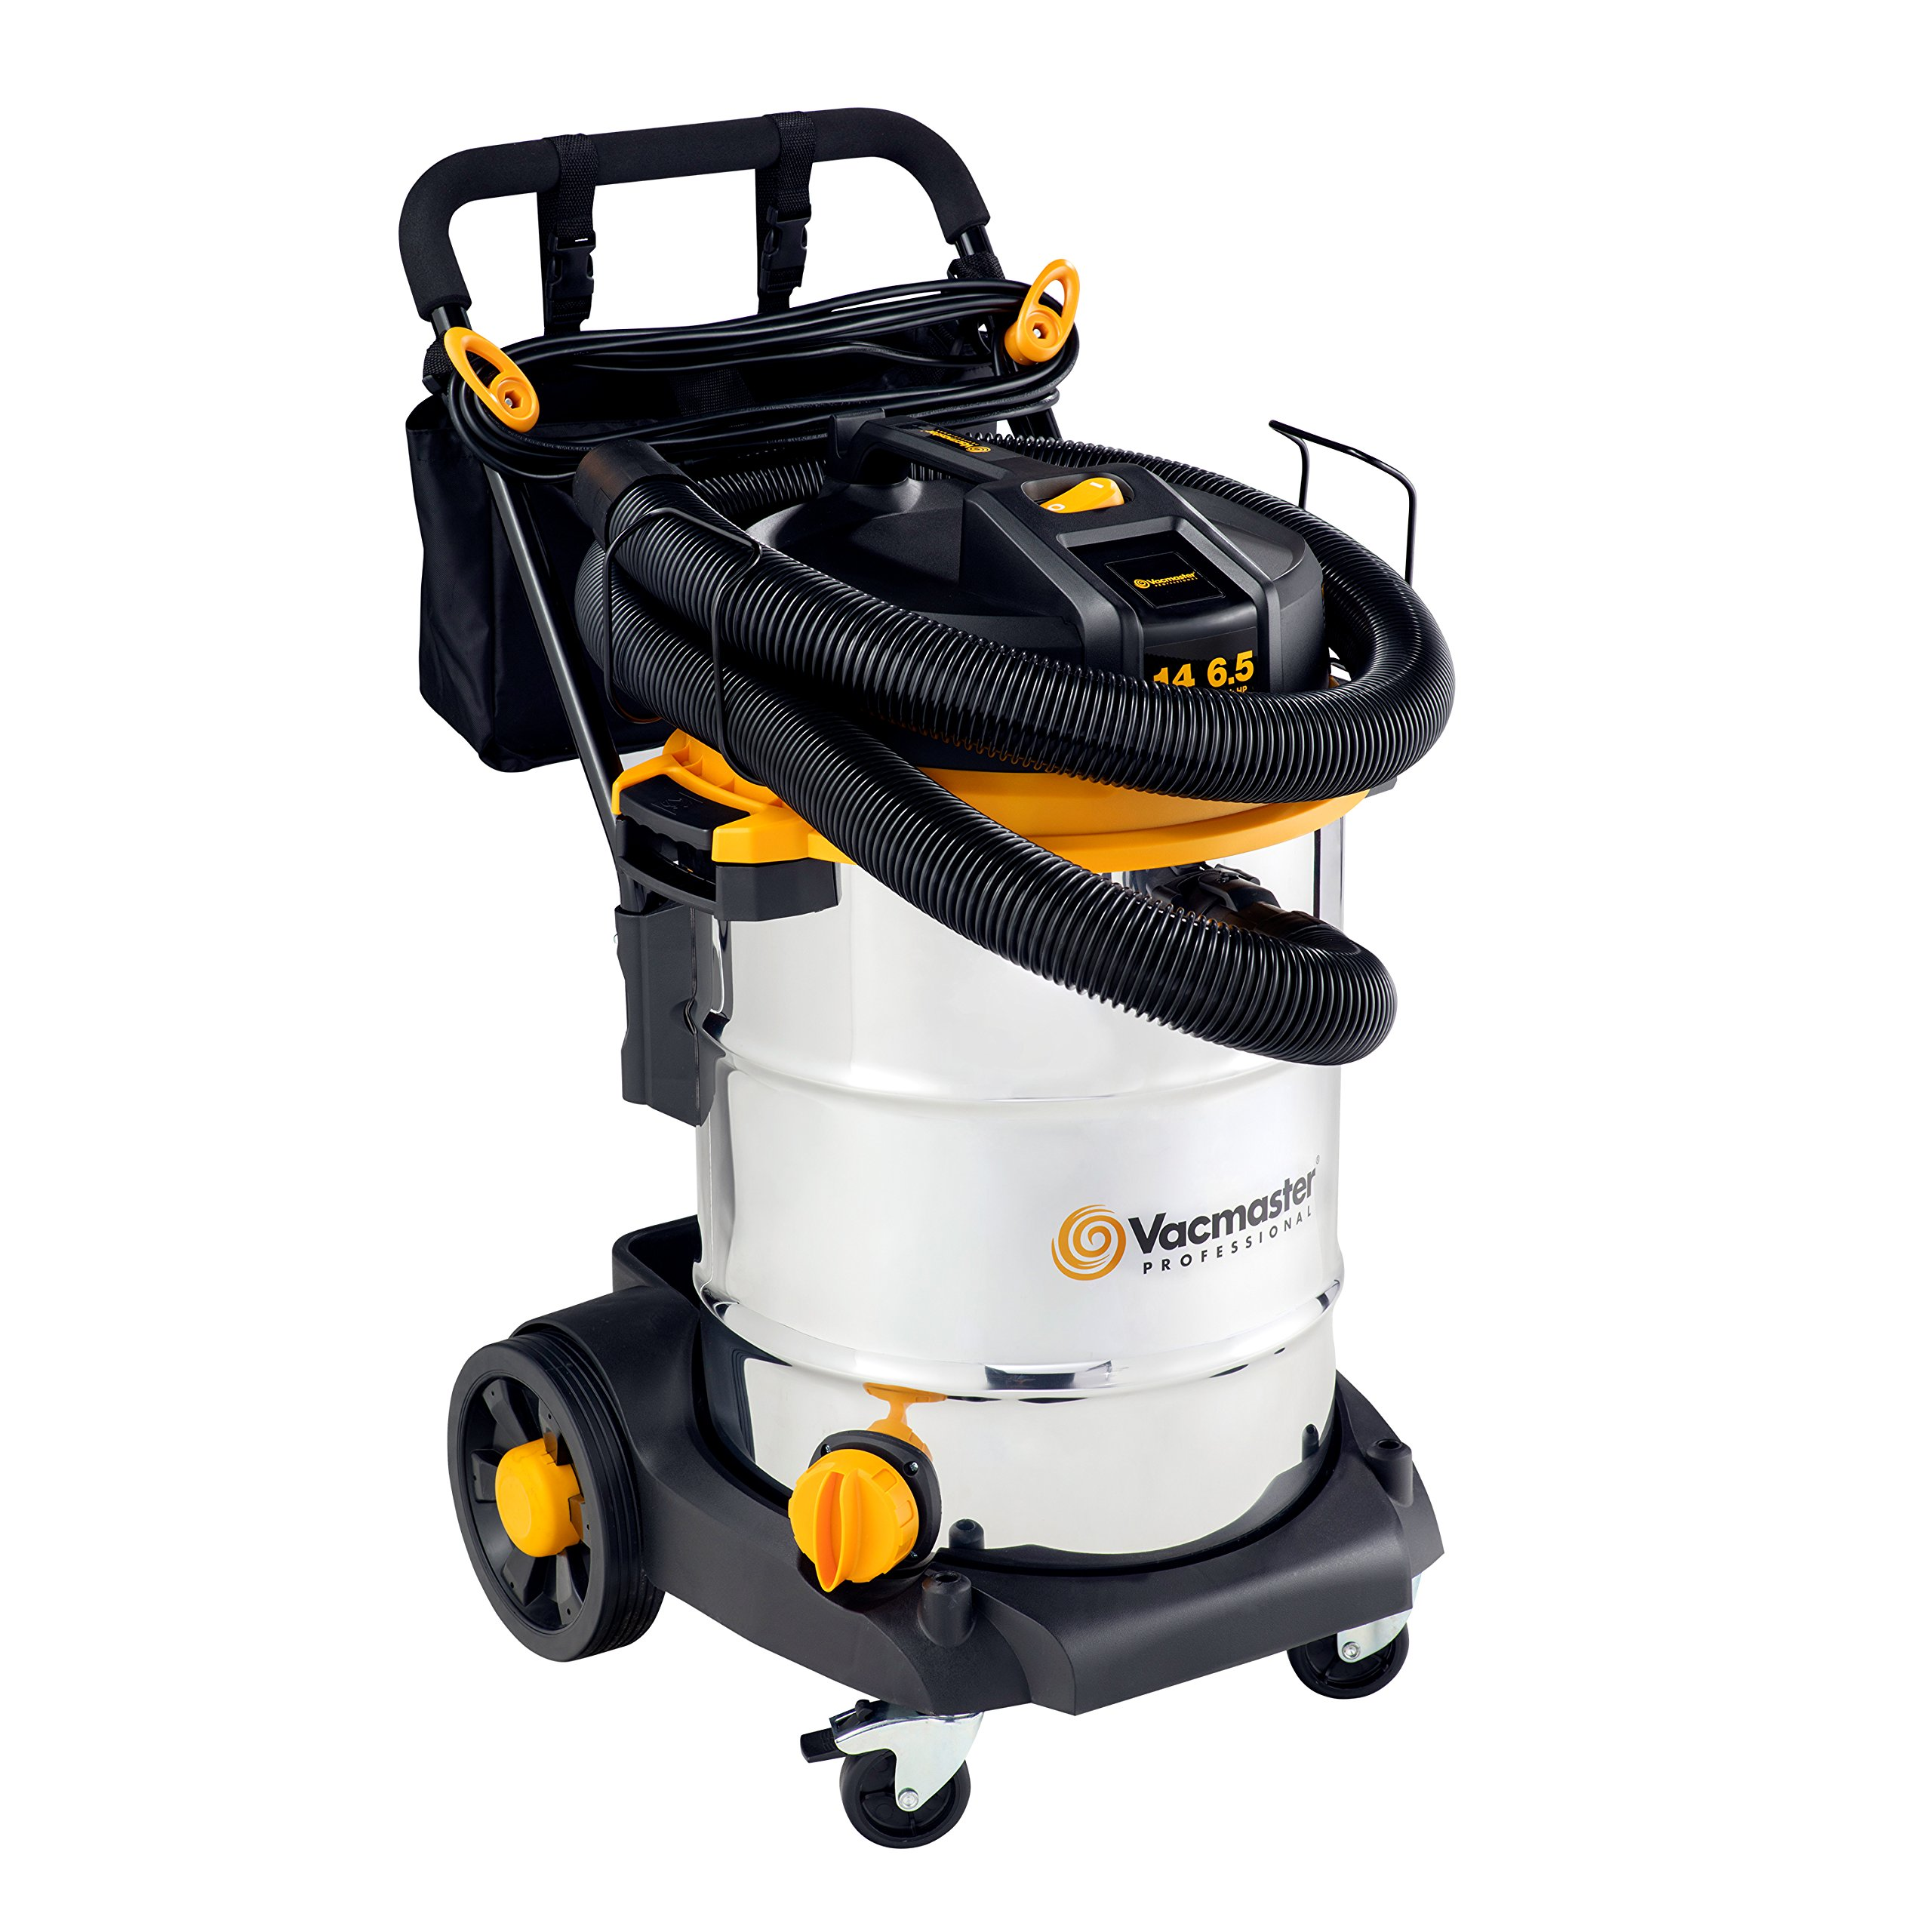 Vacmaster - Beast Professional Series 14 Gal. 6.5 HP Steel Tank Wet/Dry Vac with Cart (VJE1412SW0201) by Vacmaster (Image #5)